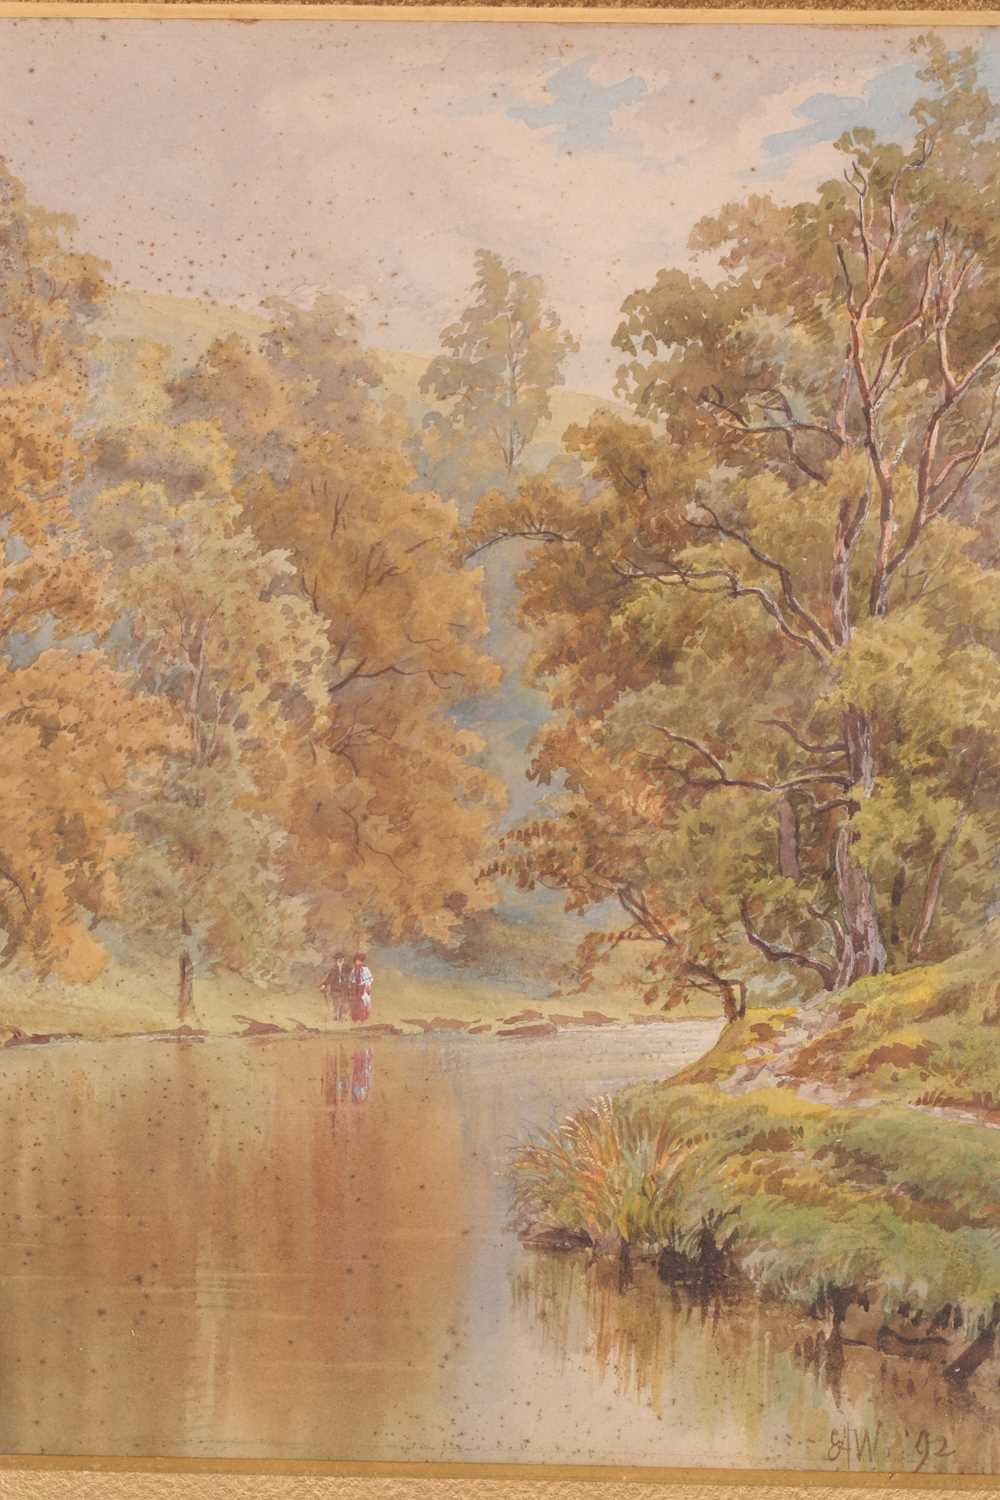 Ernest Albert Waterlow, (1850-1919), Walking in a river landscape, watercolour, signed with monogram - Image 2 of 5